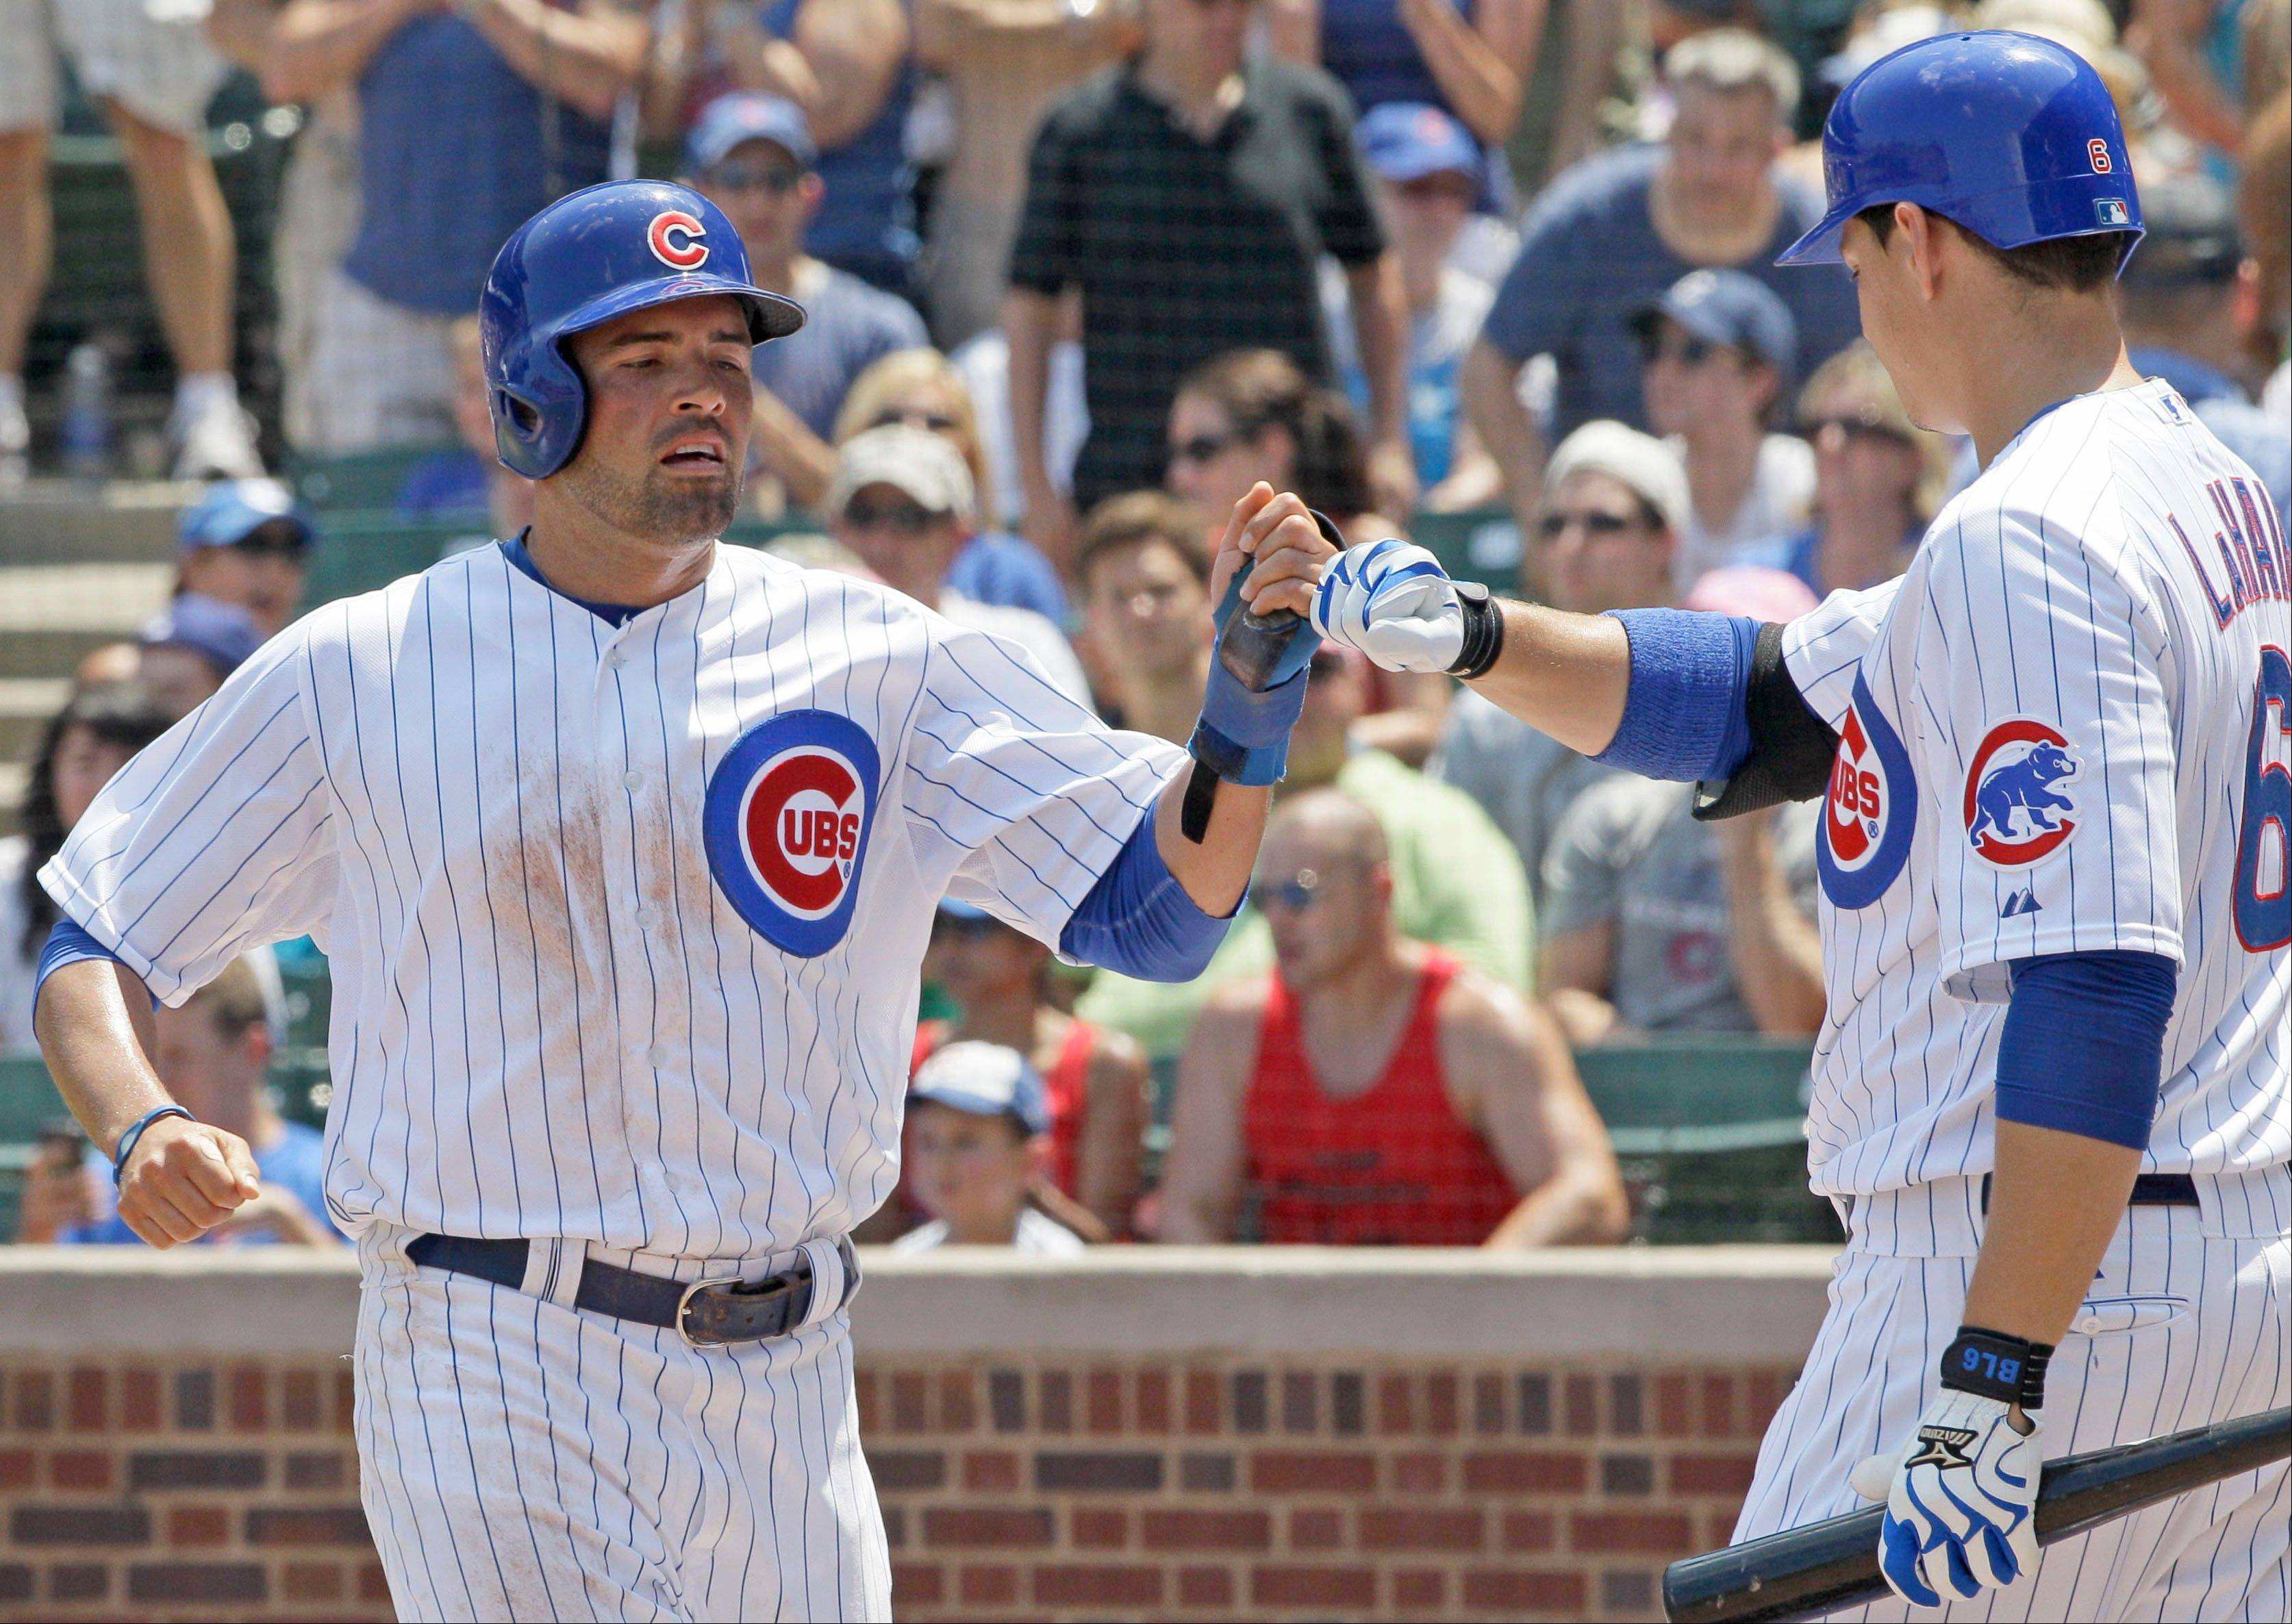 David DeJesus, left, celebrates with Bryan LaHair after scoring on a single hit by Anthony Rizzo during Sunday�s first inning of the Cubs� victory over Arizona at Wrigley Field.